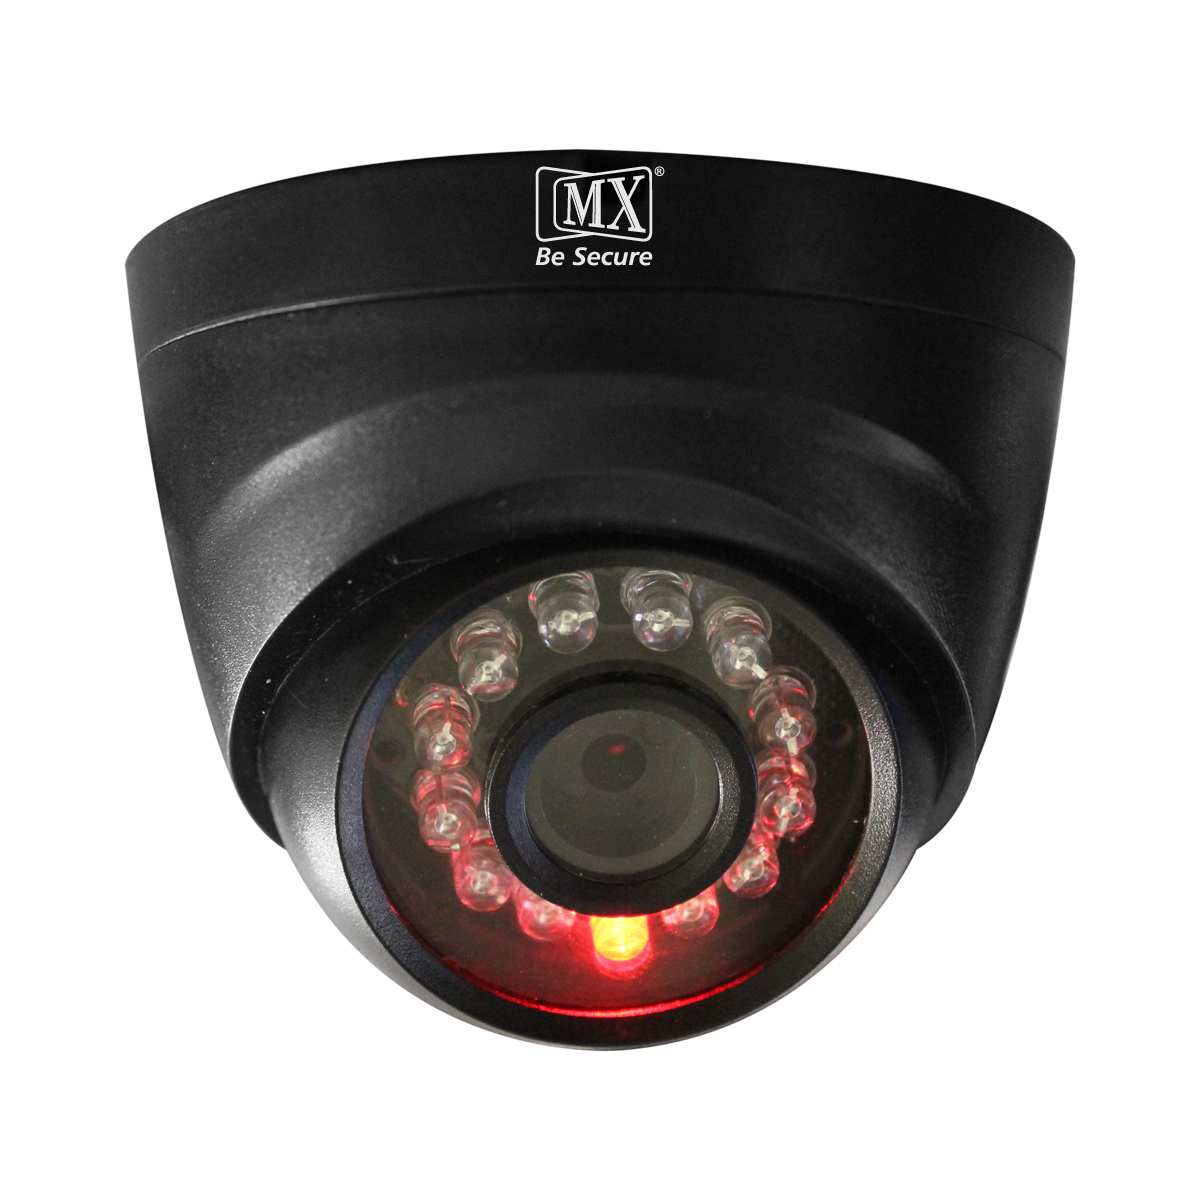 MX Dummy Fake Simulated Infrared IR LED Sensor Black Dome Wireless Security Camera With Red Light Realistic Looking CCTV Surveillance